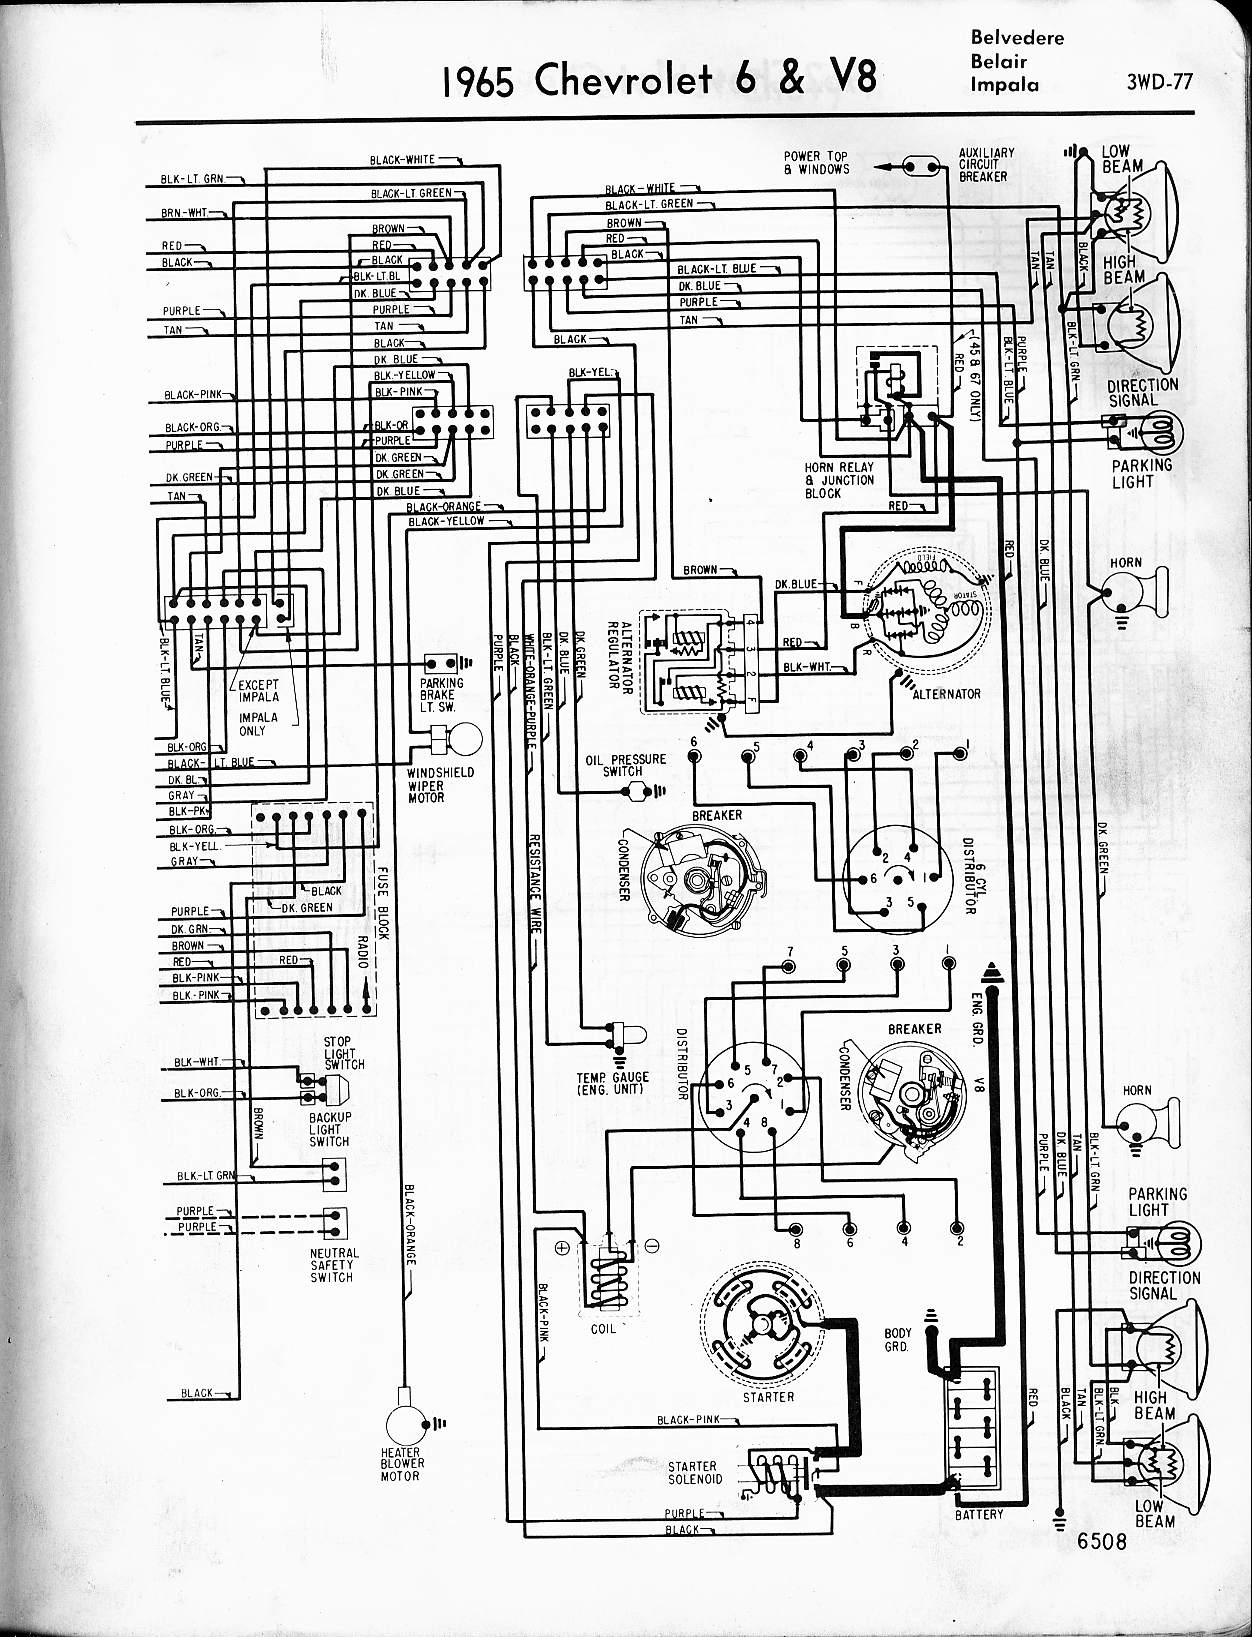 WRG-0721] 1972 Chevy Truck Wiper Motor Wiring Diagram on